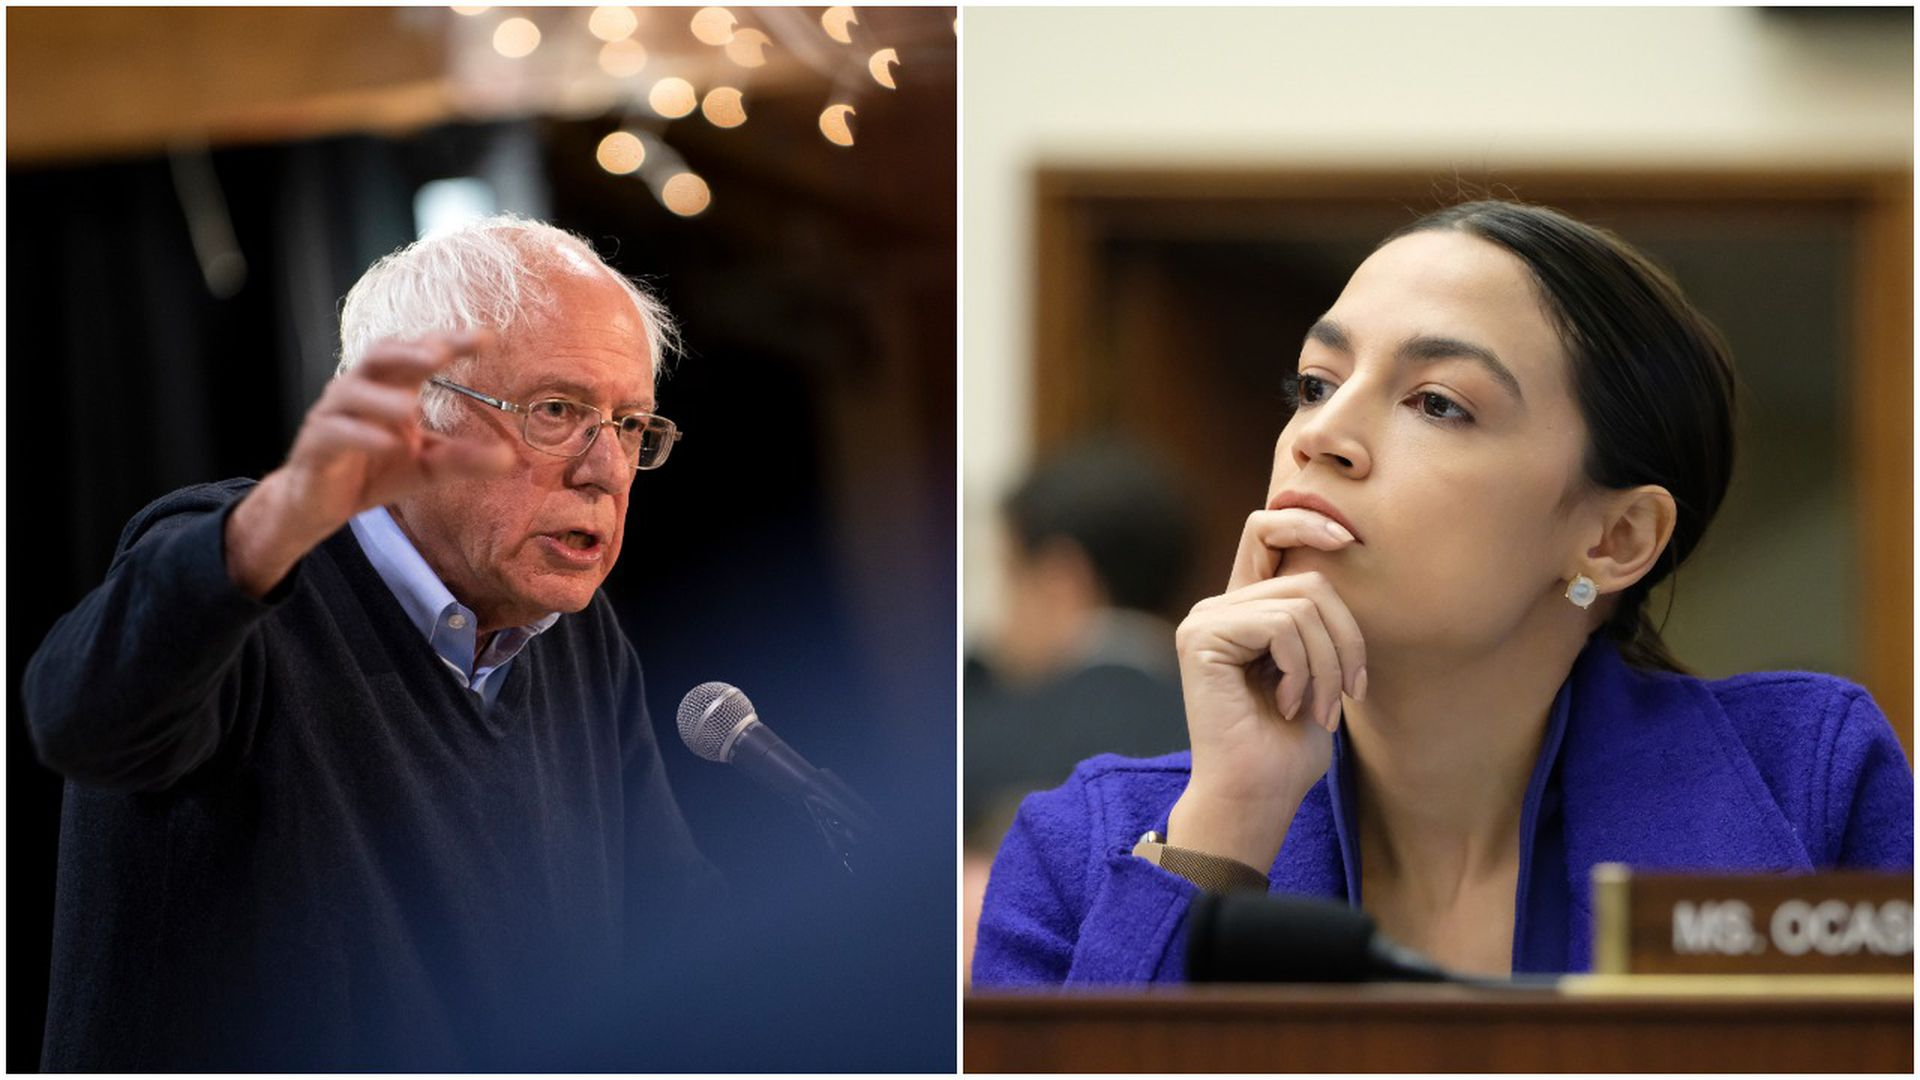 This image is a split-screen of Bernie Sanders and AOC.